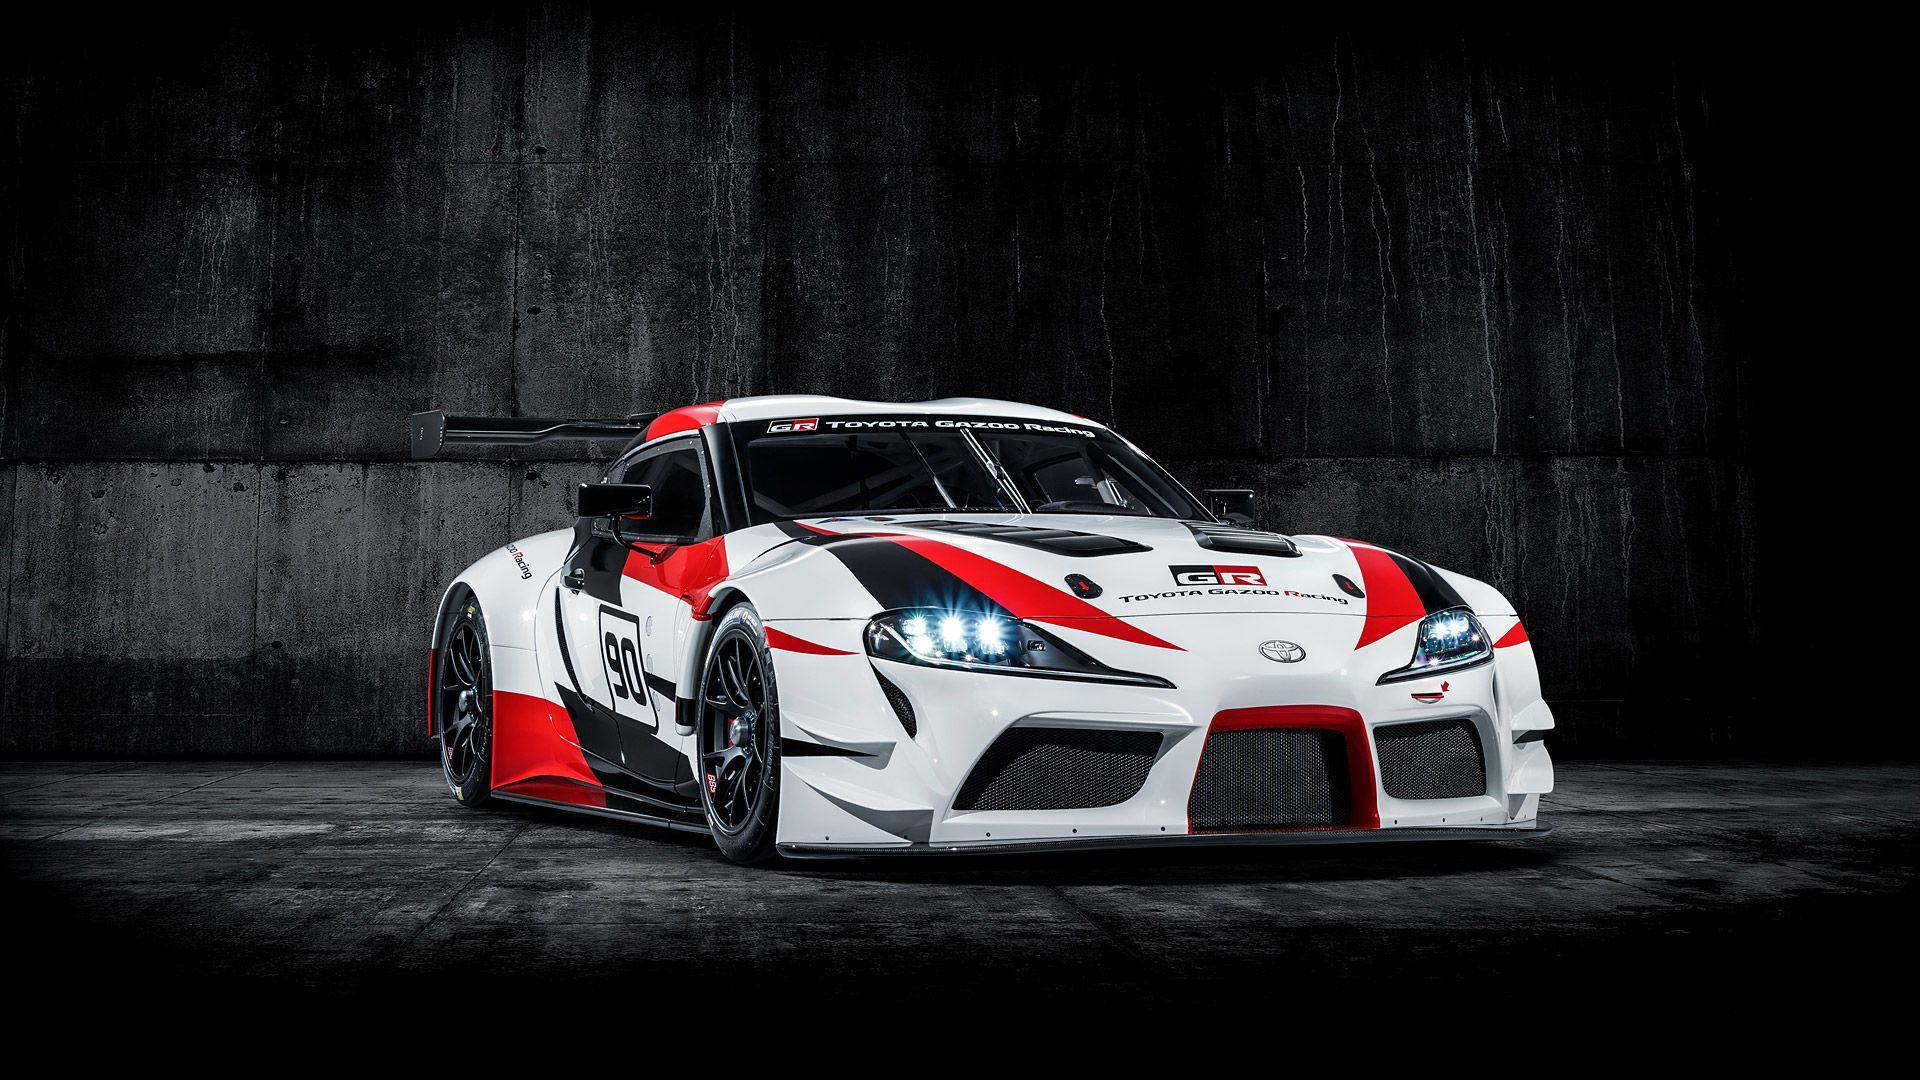 2018 Toyota GR Supra Racing Concept Wallpapers & HD Image